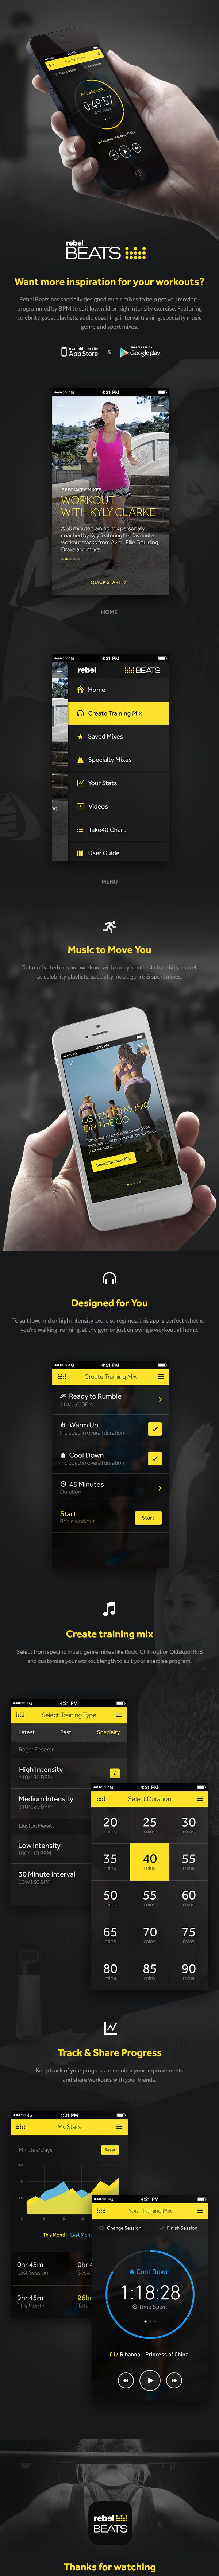 Rebel Beats App by igloo, via Behance